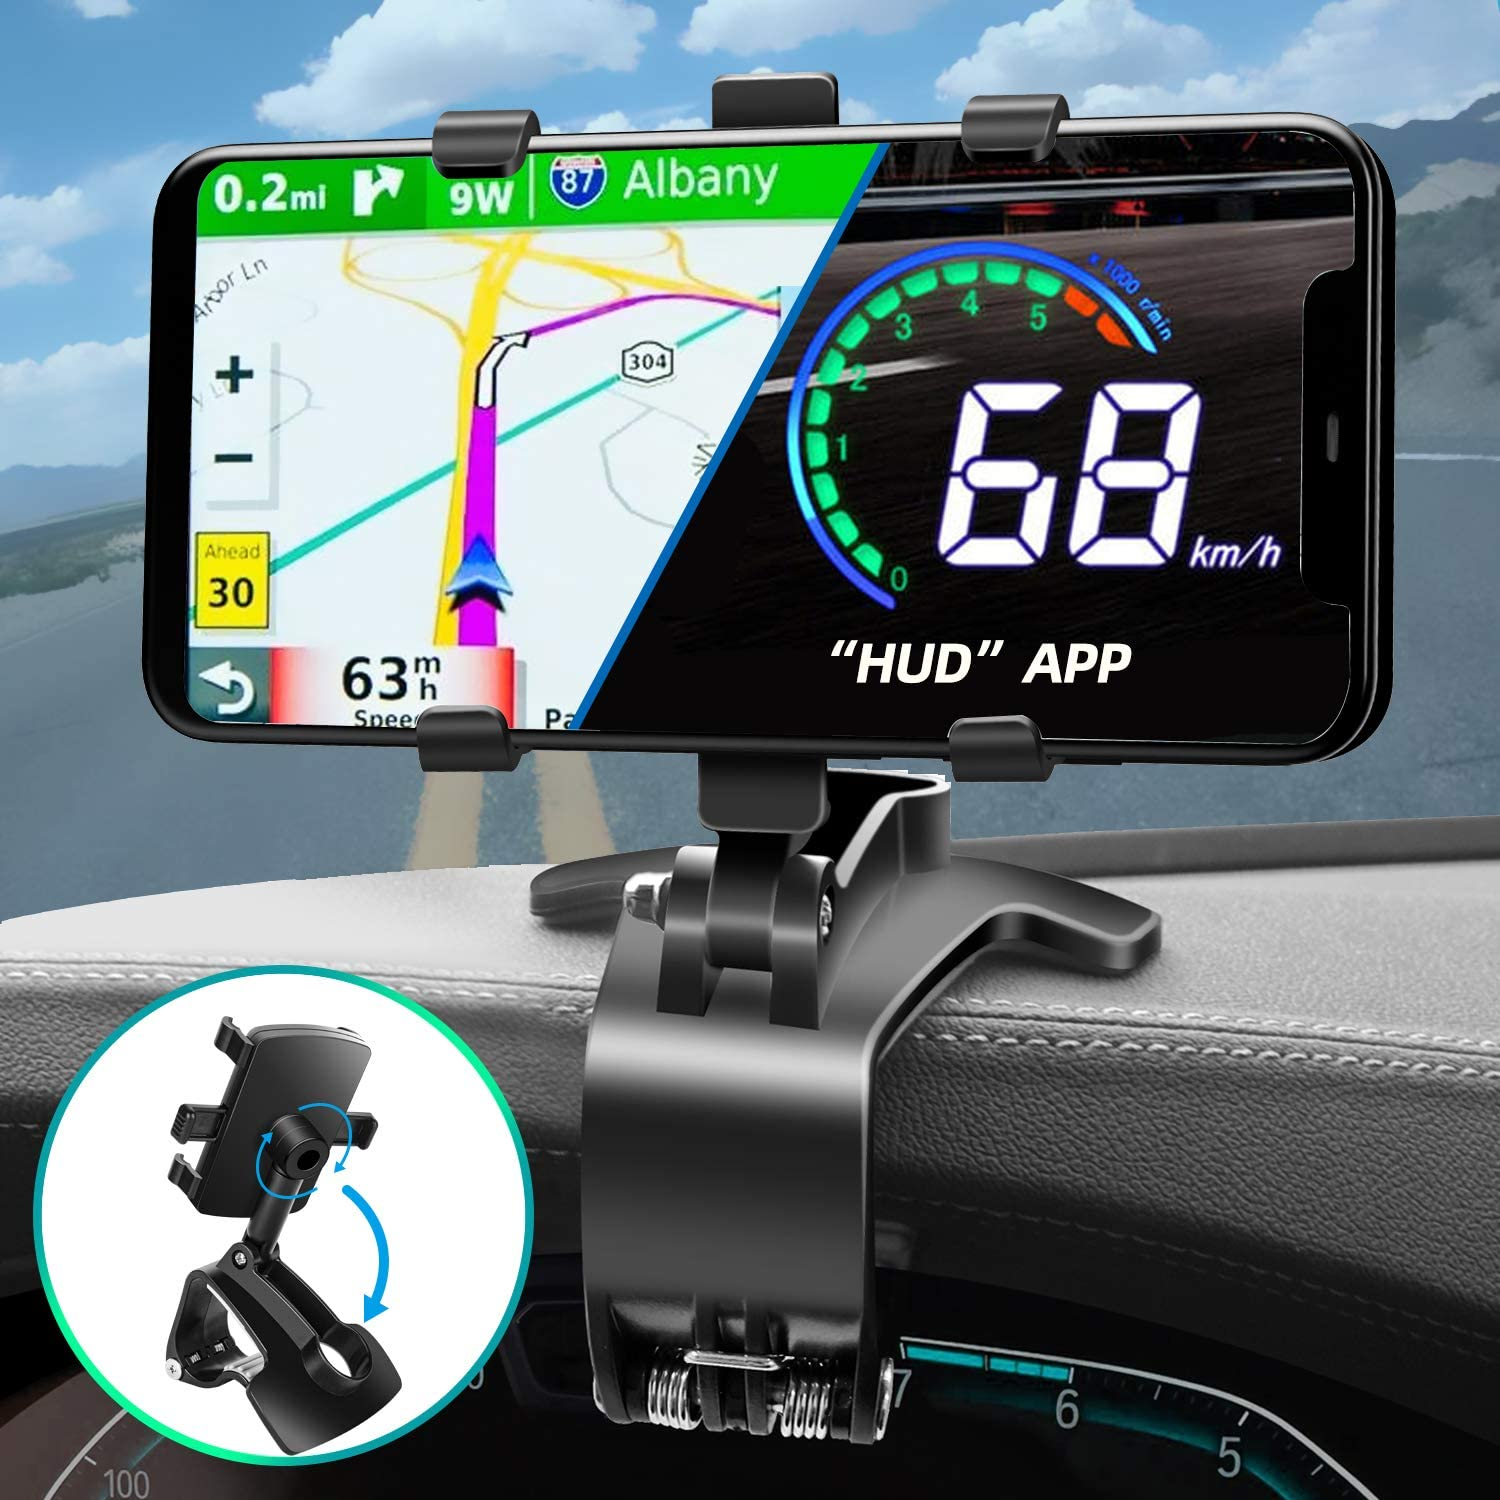 Phone Car Holder Mount 360 Degree Rotation Dashboard Cell Phone Holder for Car Rearview Mirror Clip Stand Compatible for iPhone 11 12 Pro XS XR 8 8Plus 7 Samsung Galaxy S10 S9 S8 LG and More